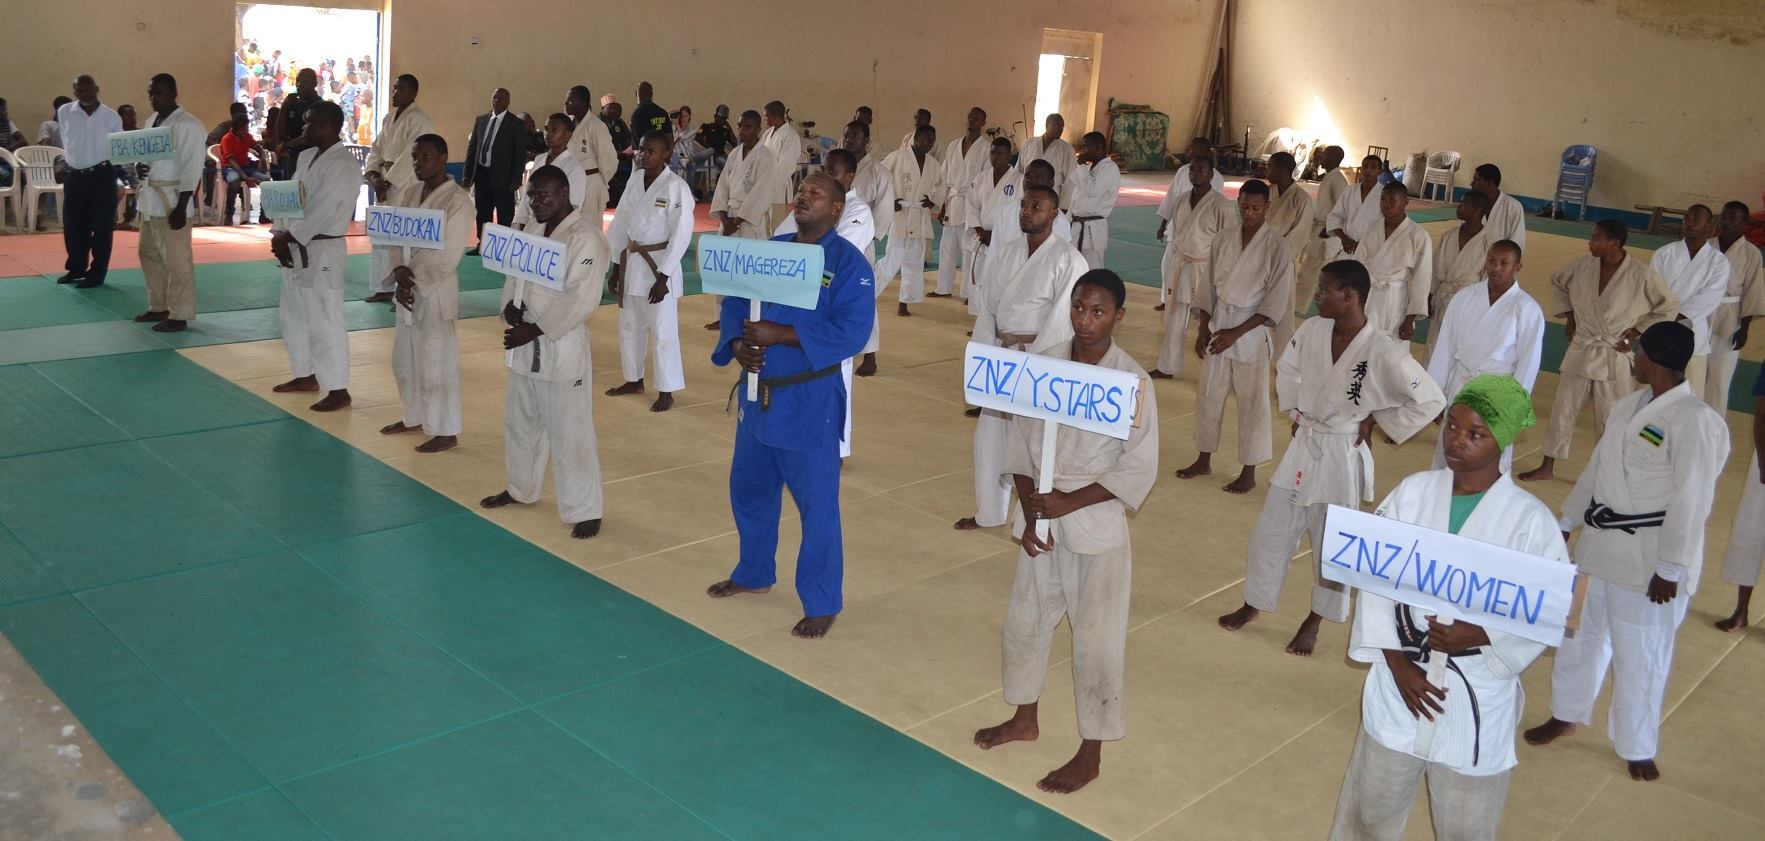 ZANZIBAR WEGHT CATEGORY JUDO CHAMPIONSHIP2018~ザンジバル柔道選手権大会2018_a0088841_10362709.jpg